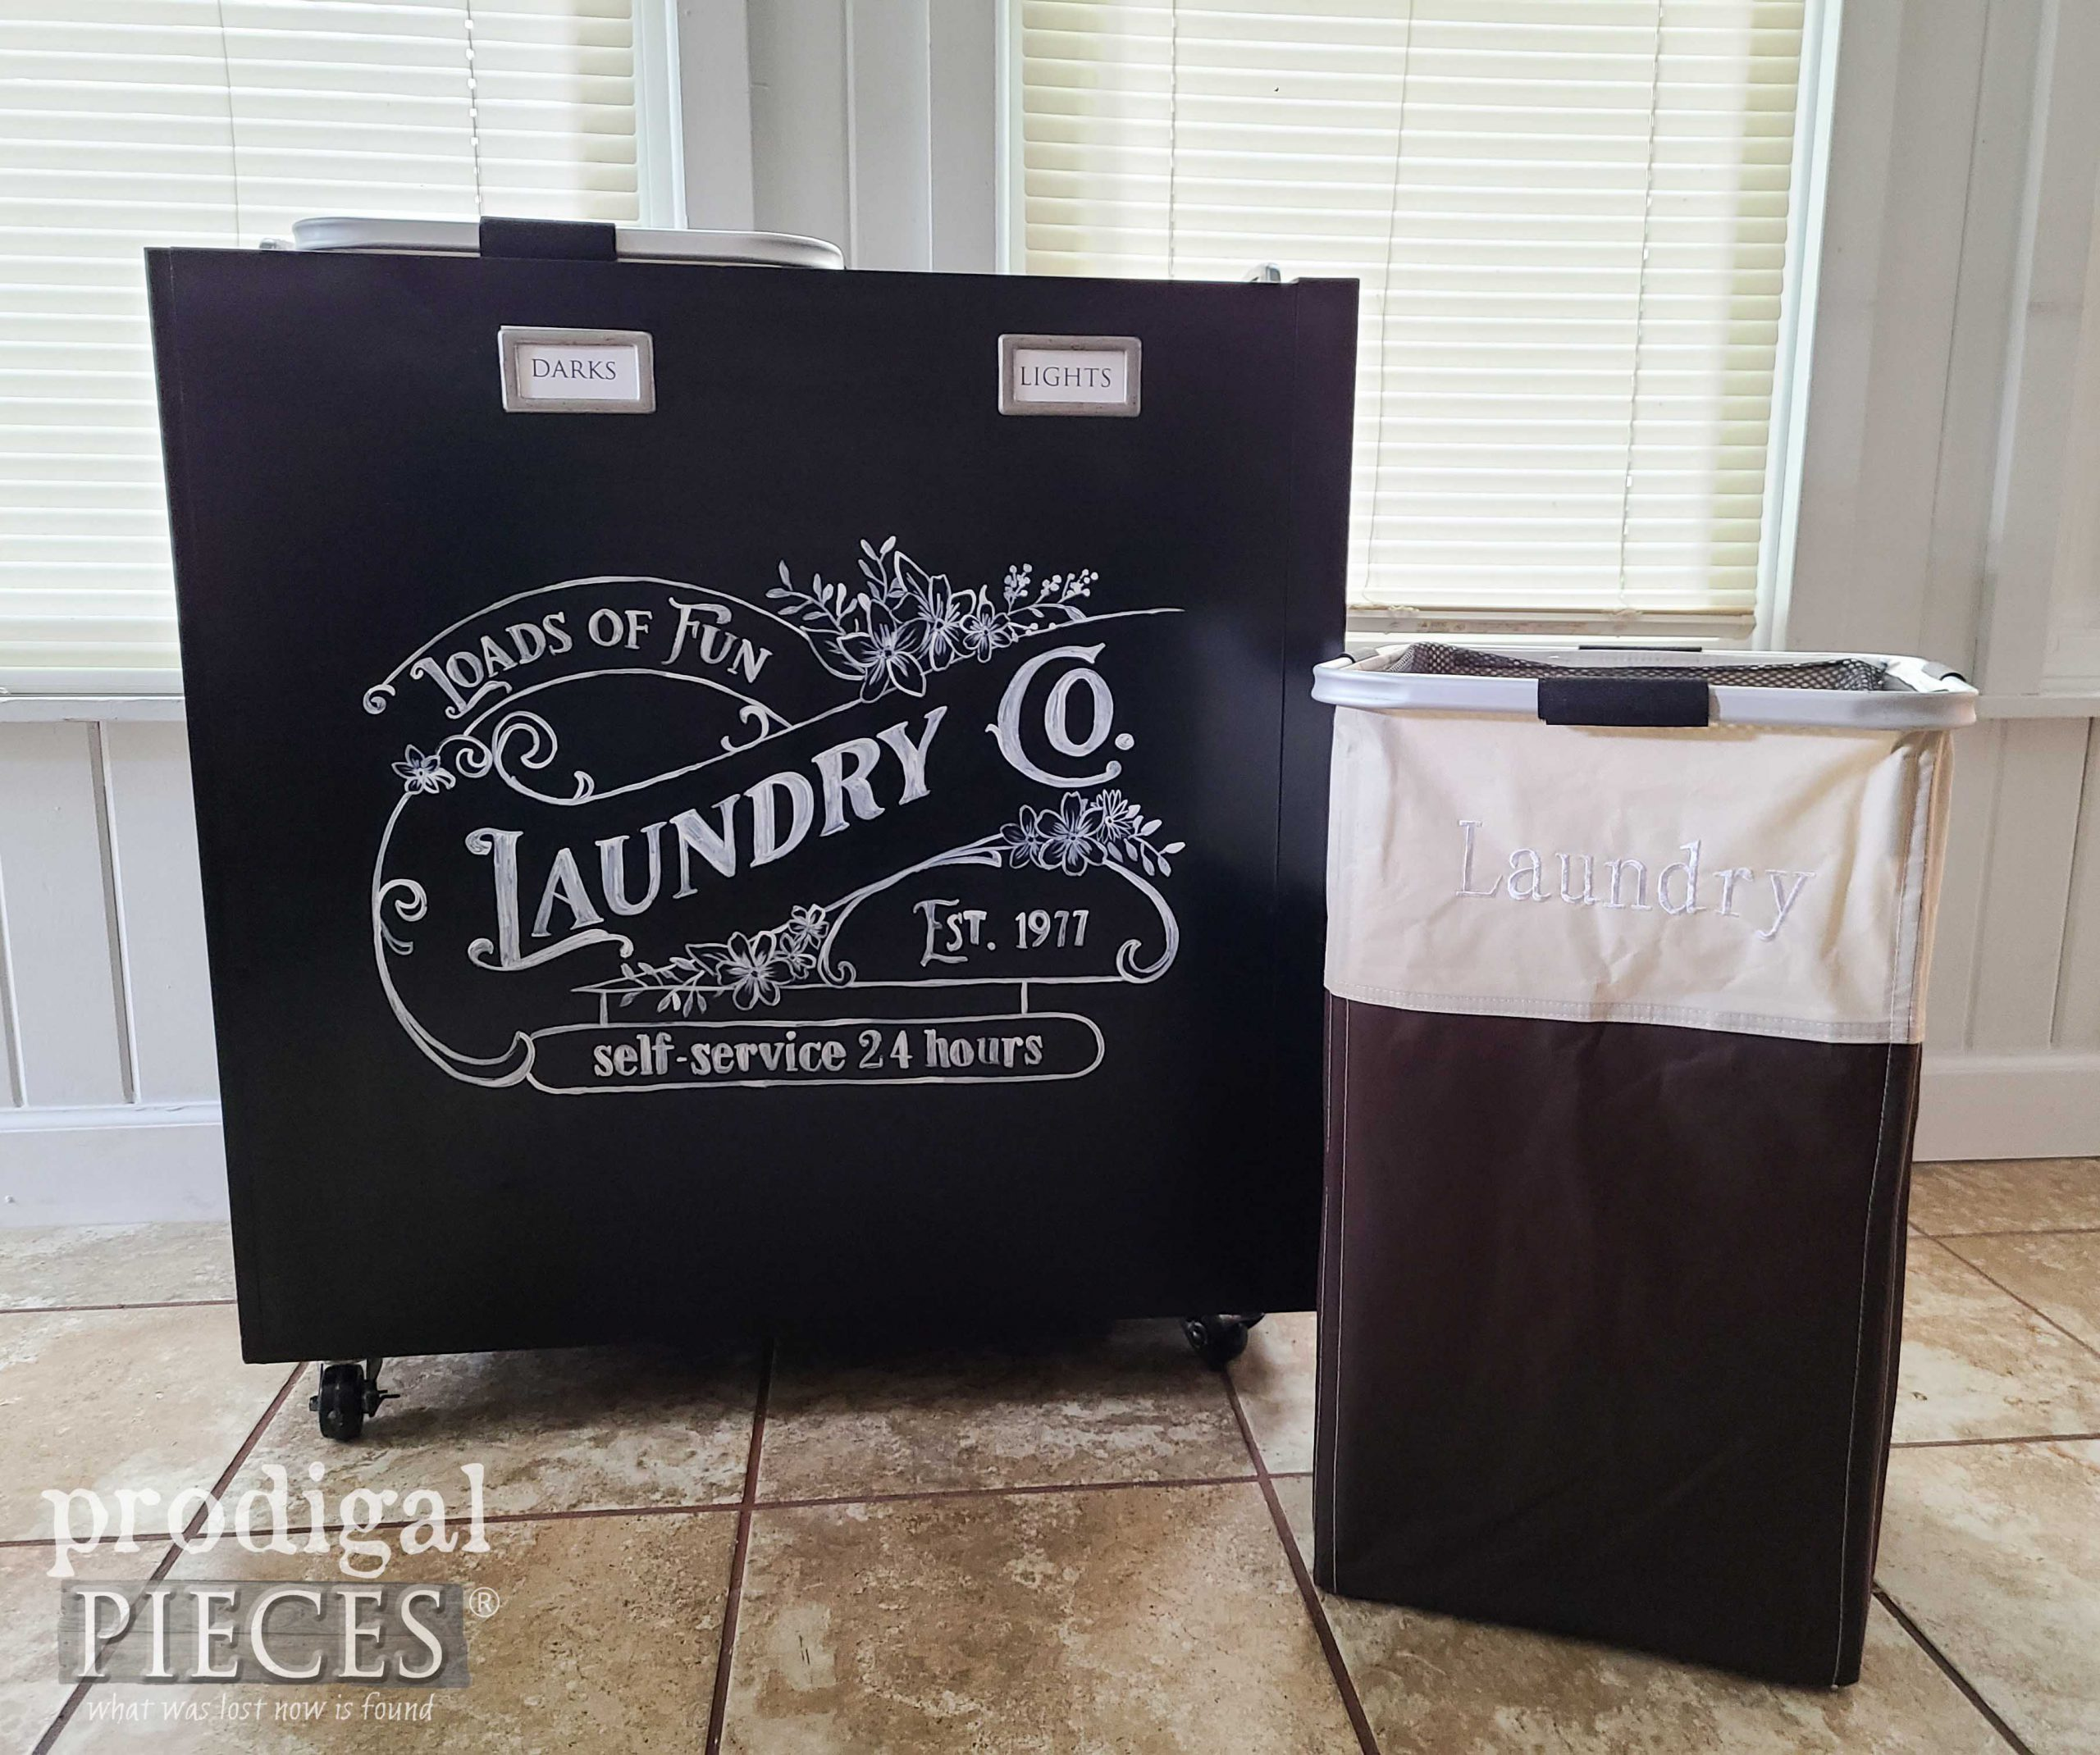 Portable Laundry Bin from Repurposed Filing Cabinet available at Prodigal Pieces | shop.prodigalpieces.com #prodigalpieces #laundry #home #shopping